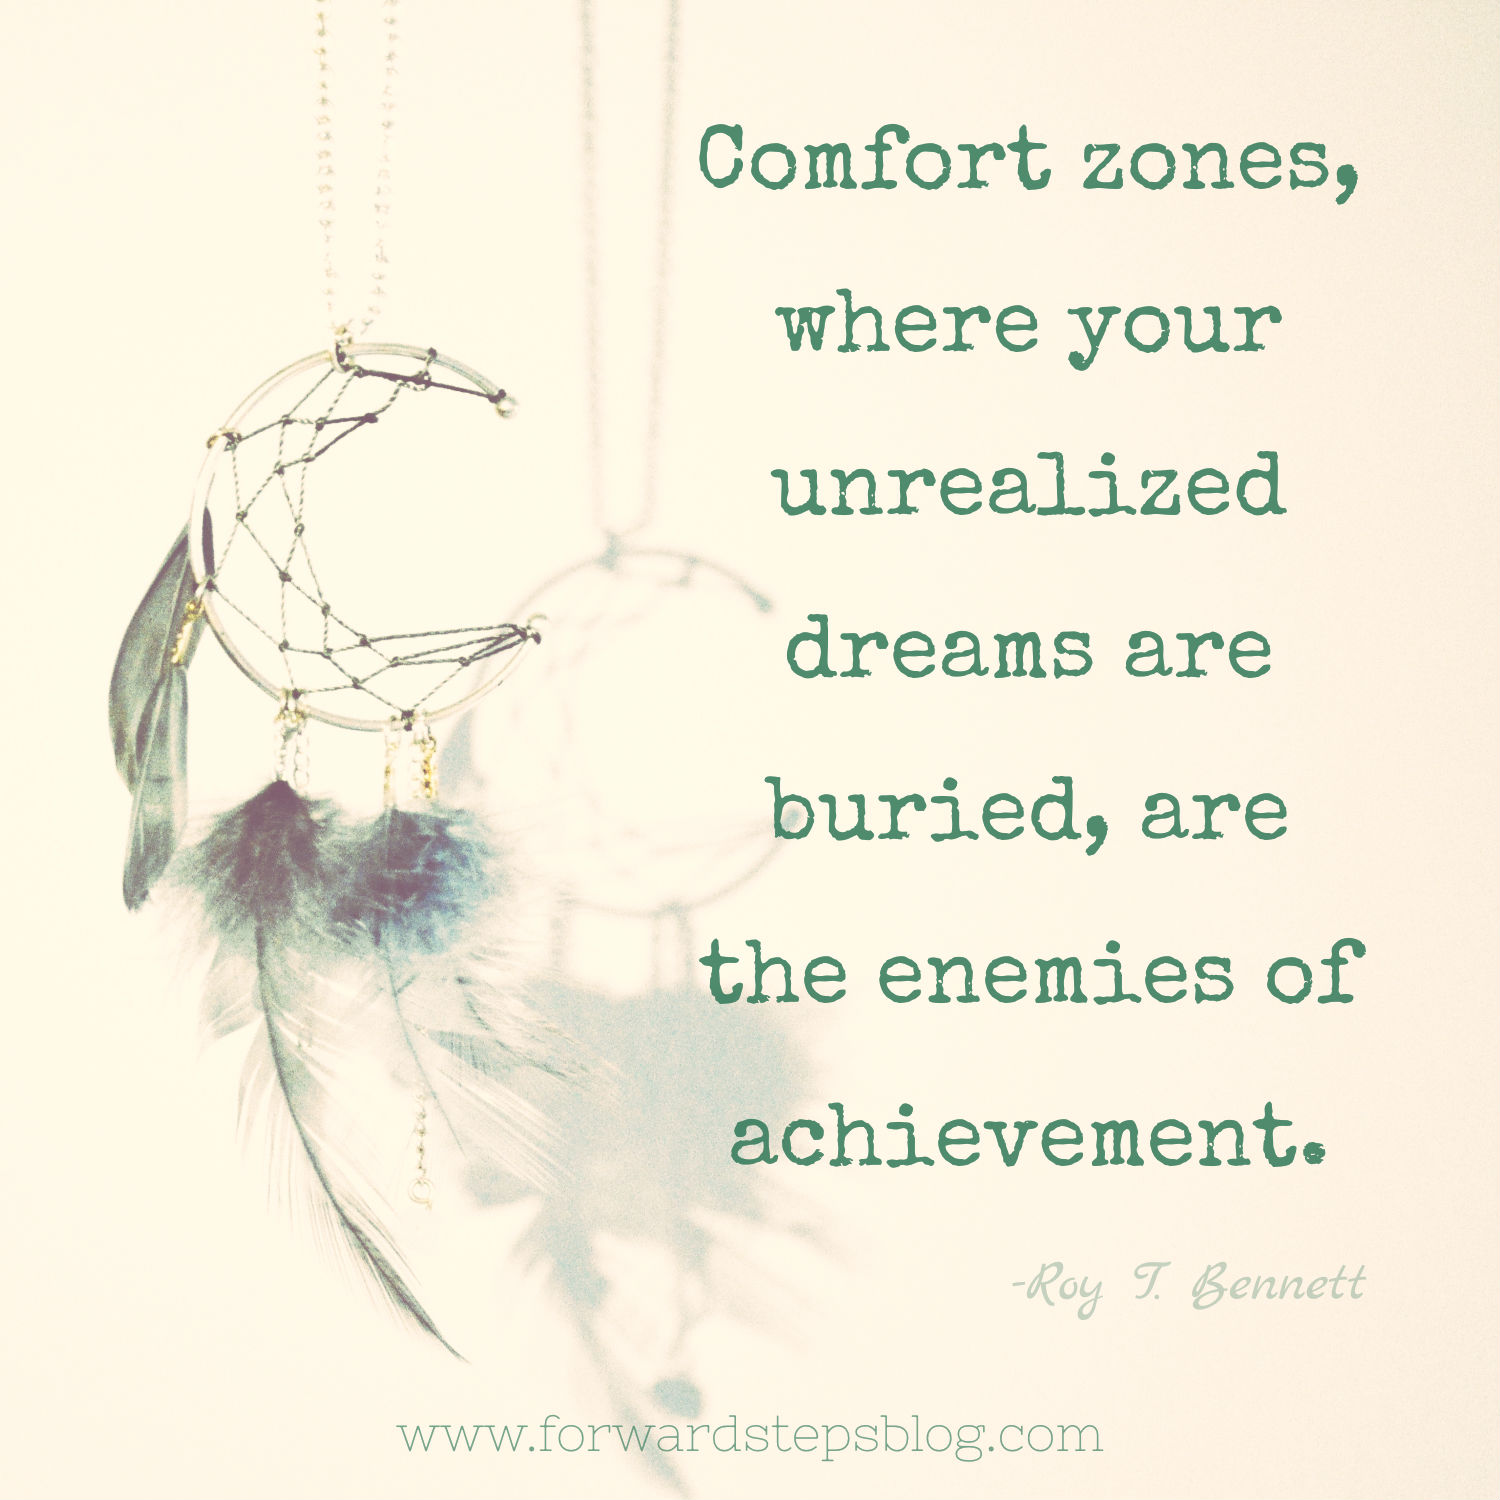 Comfort Zone - Forward Steps image_2